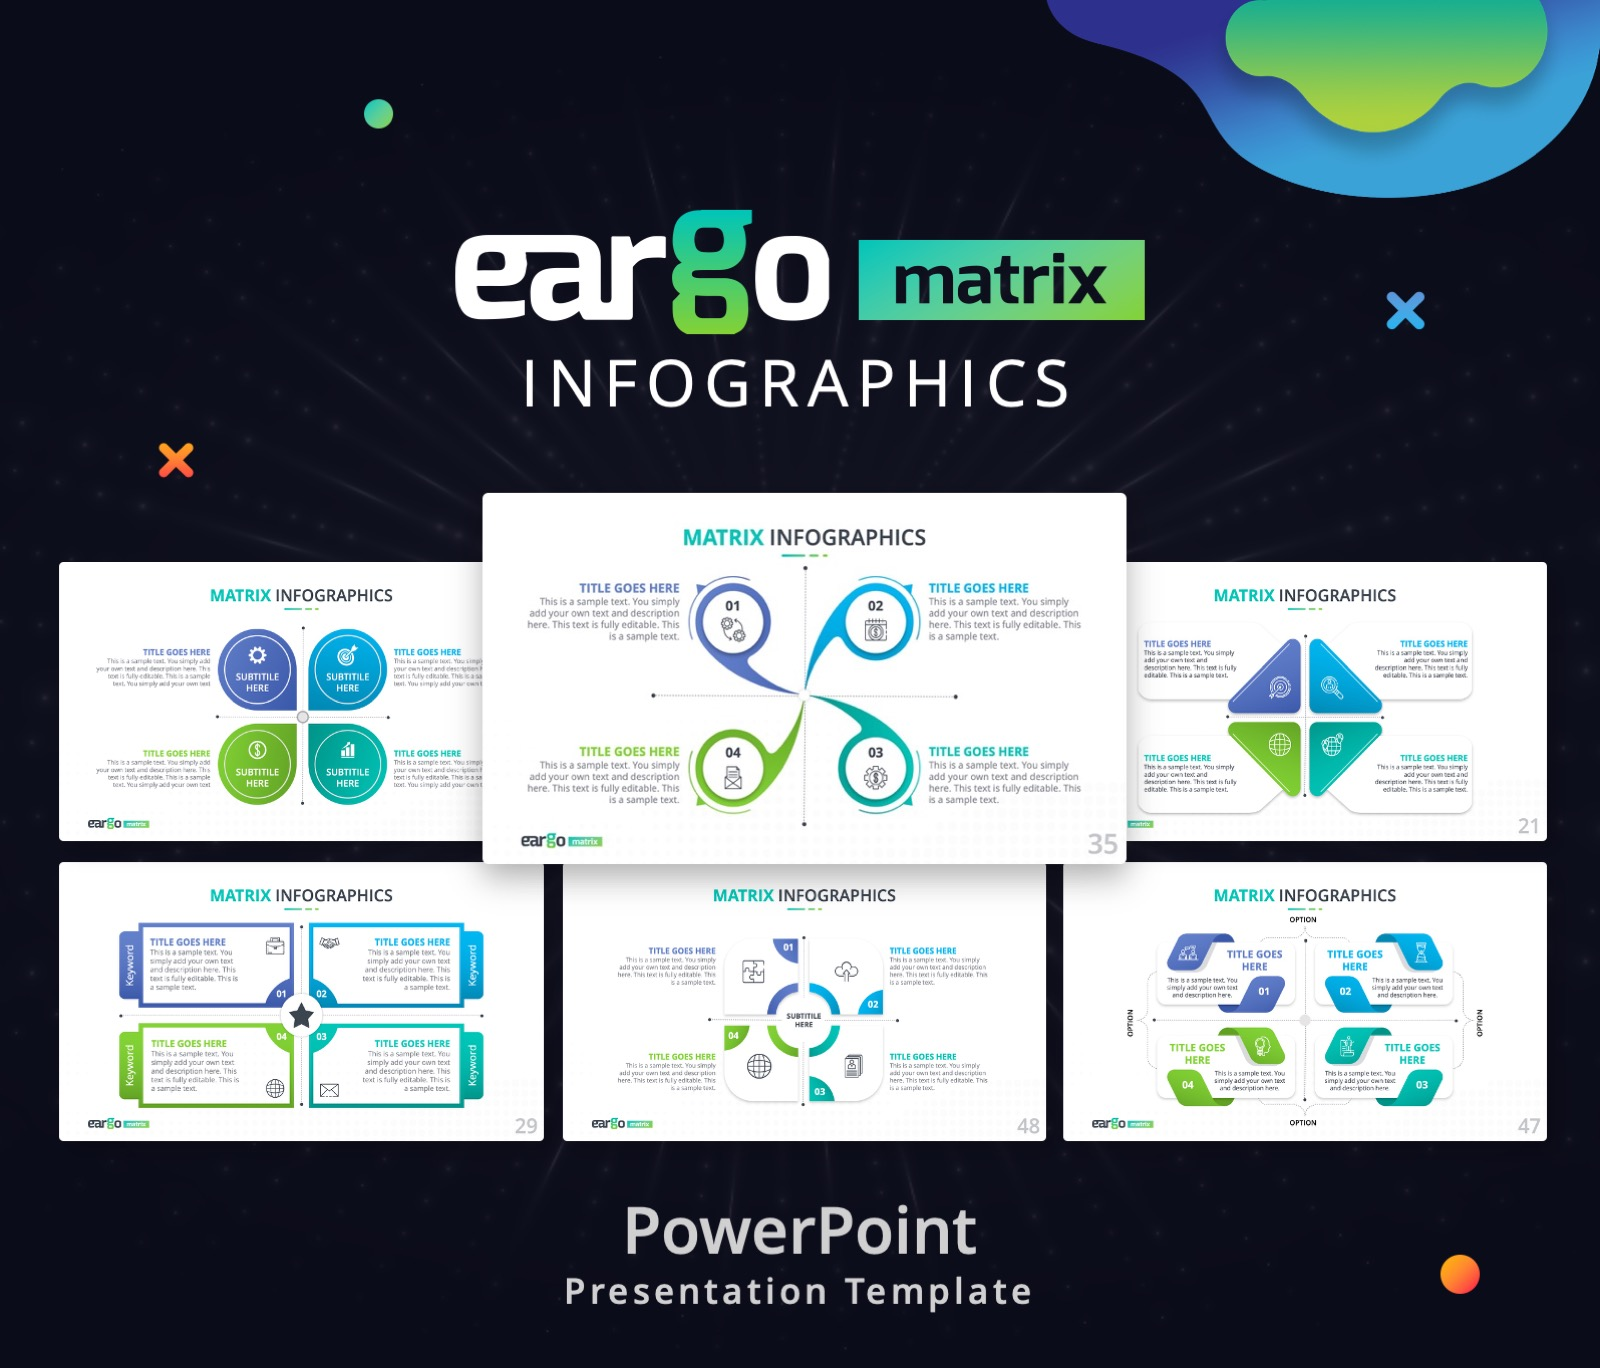 Eargo Matrix Infographics PowerPoint PPT presentation Template